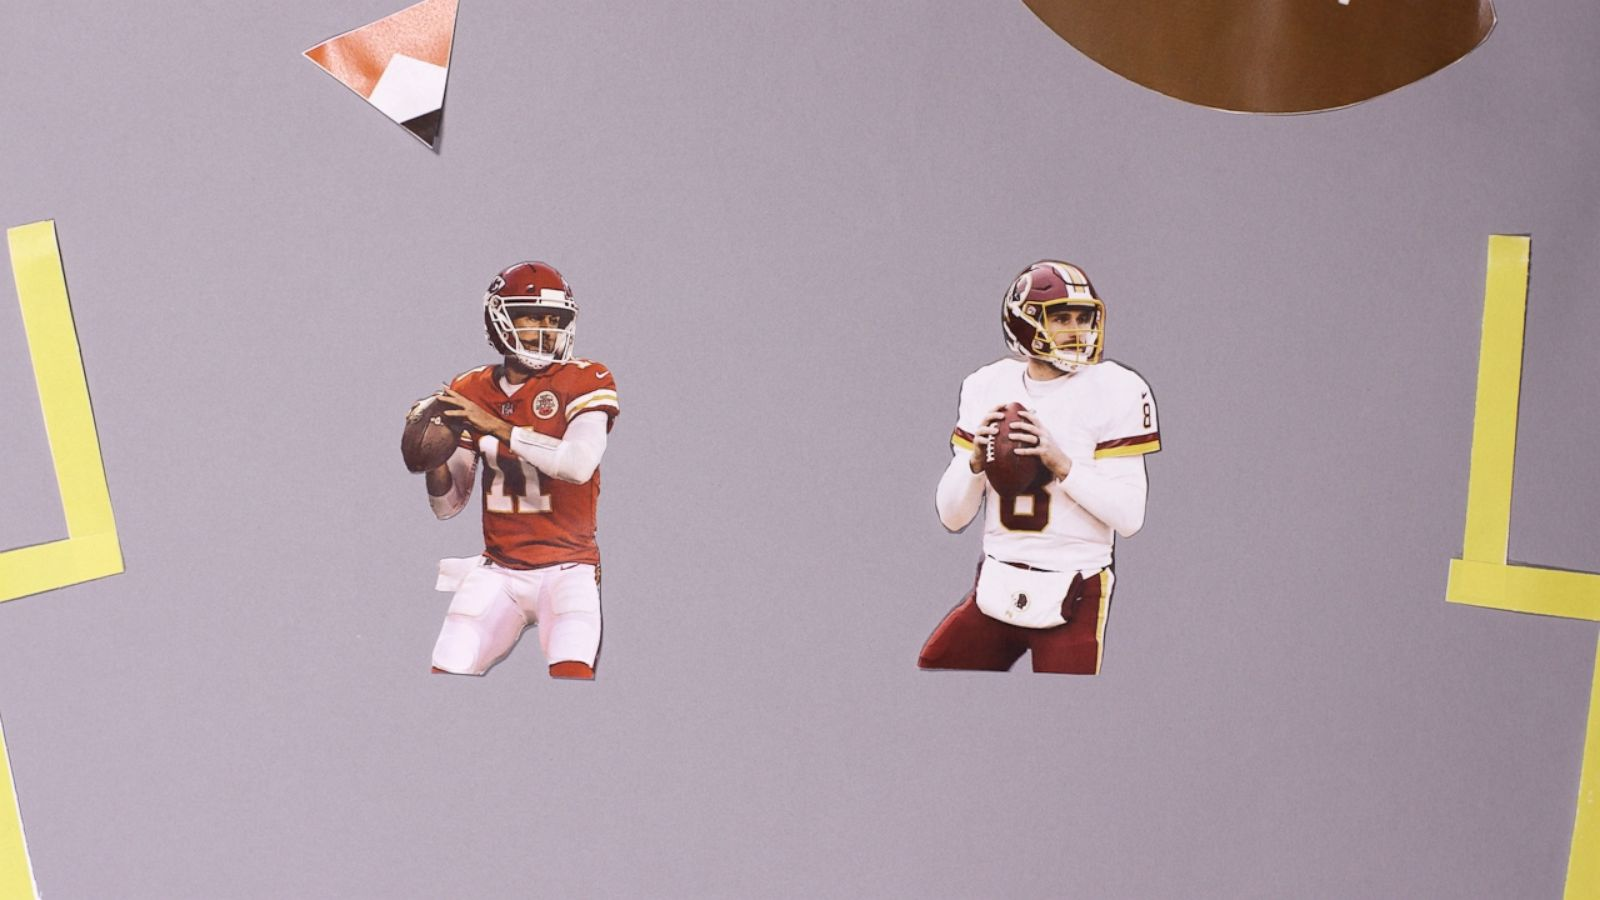 Kansas City And Washington Have Equally Good QBs Who Are Polar Opposites